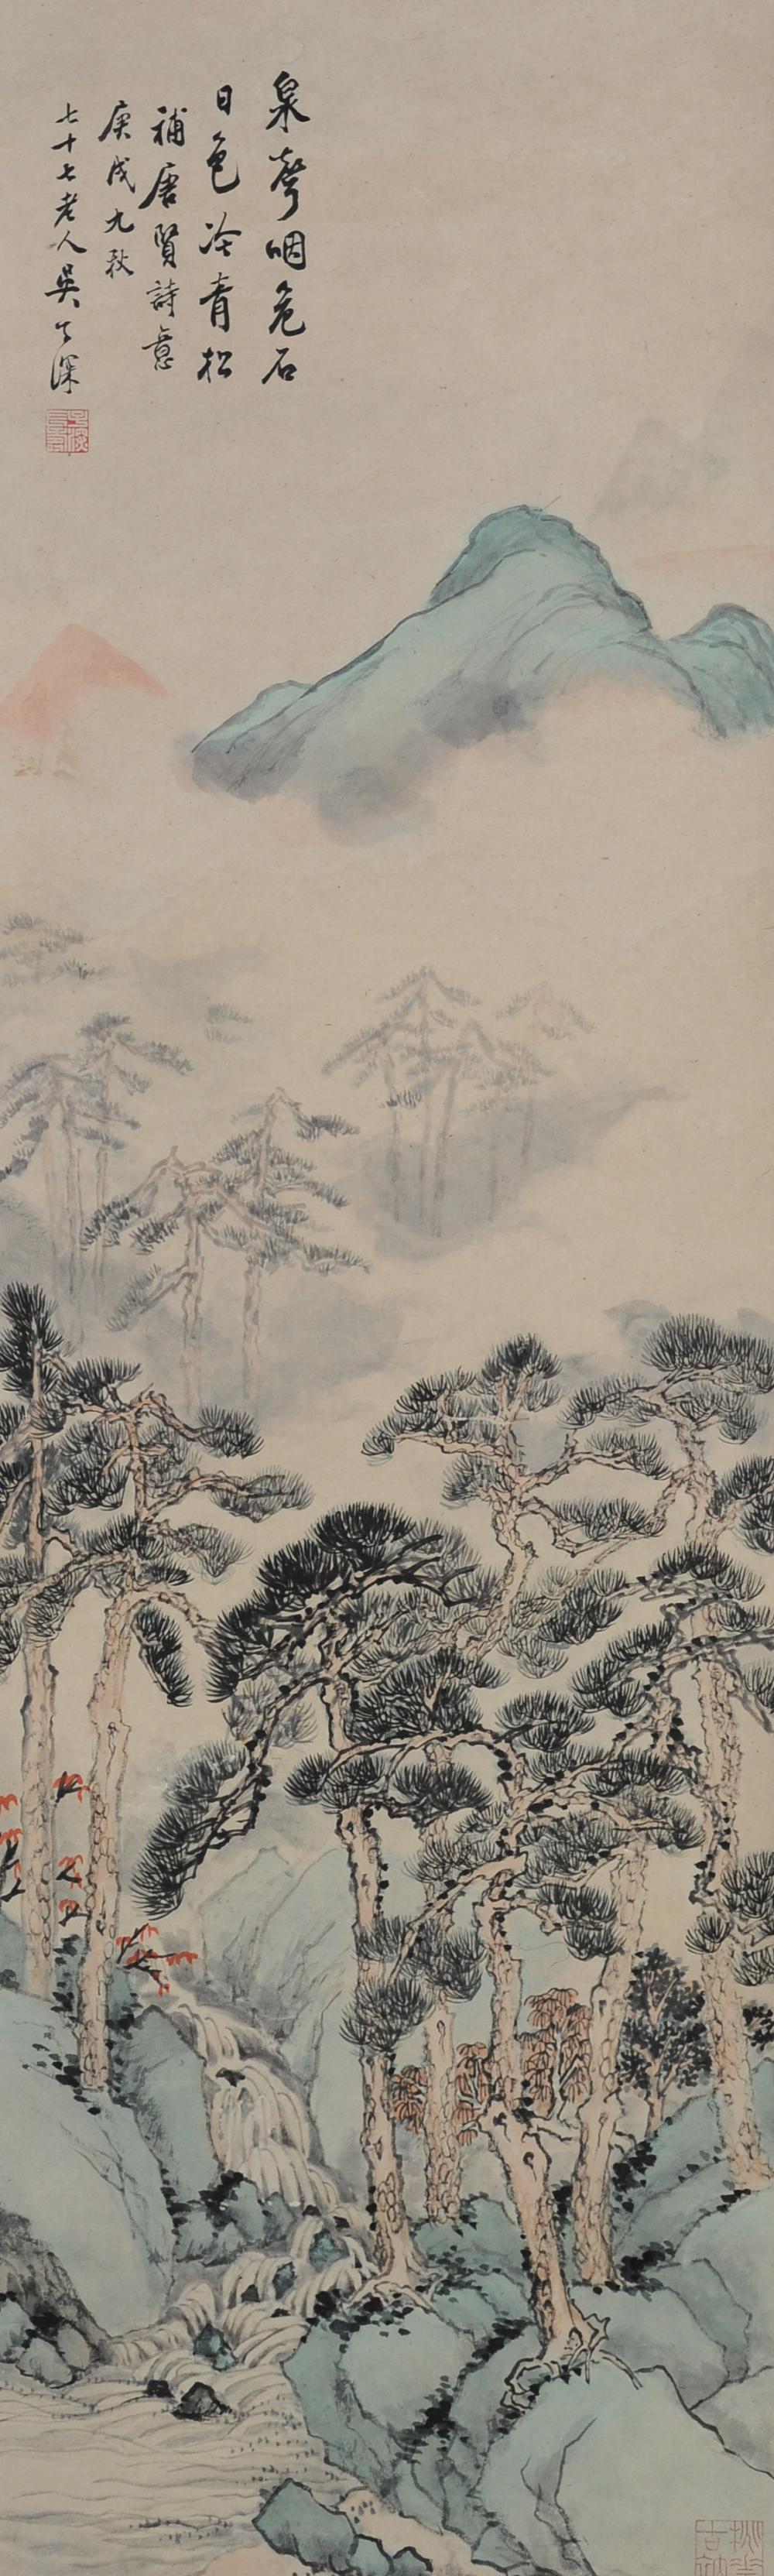 CHINESE PAINTING OF PINES & CREEK BY WU ZISHENG